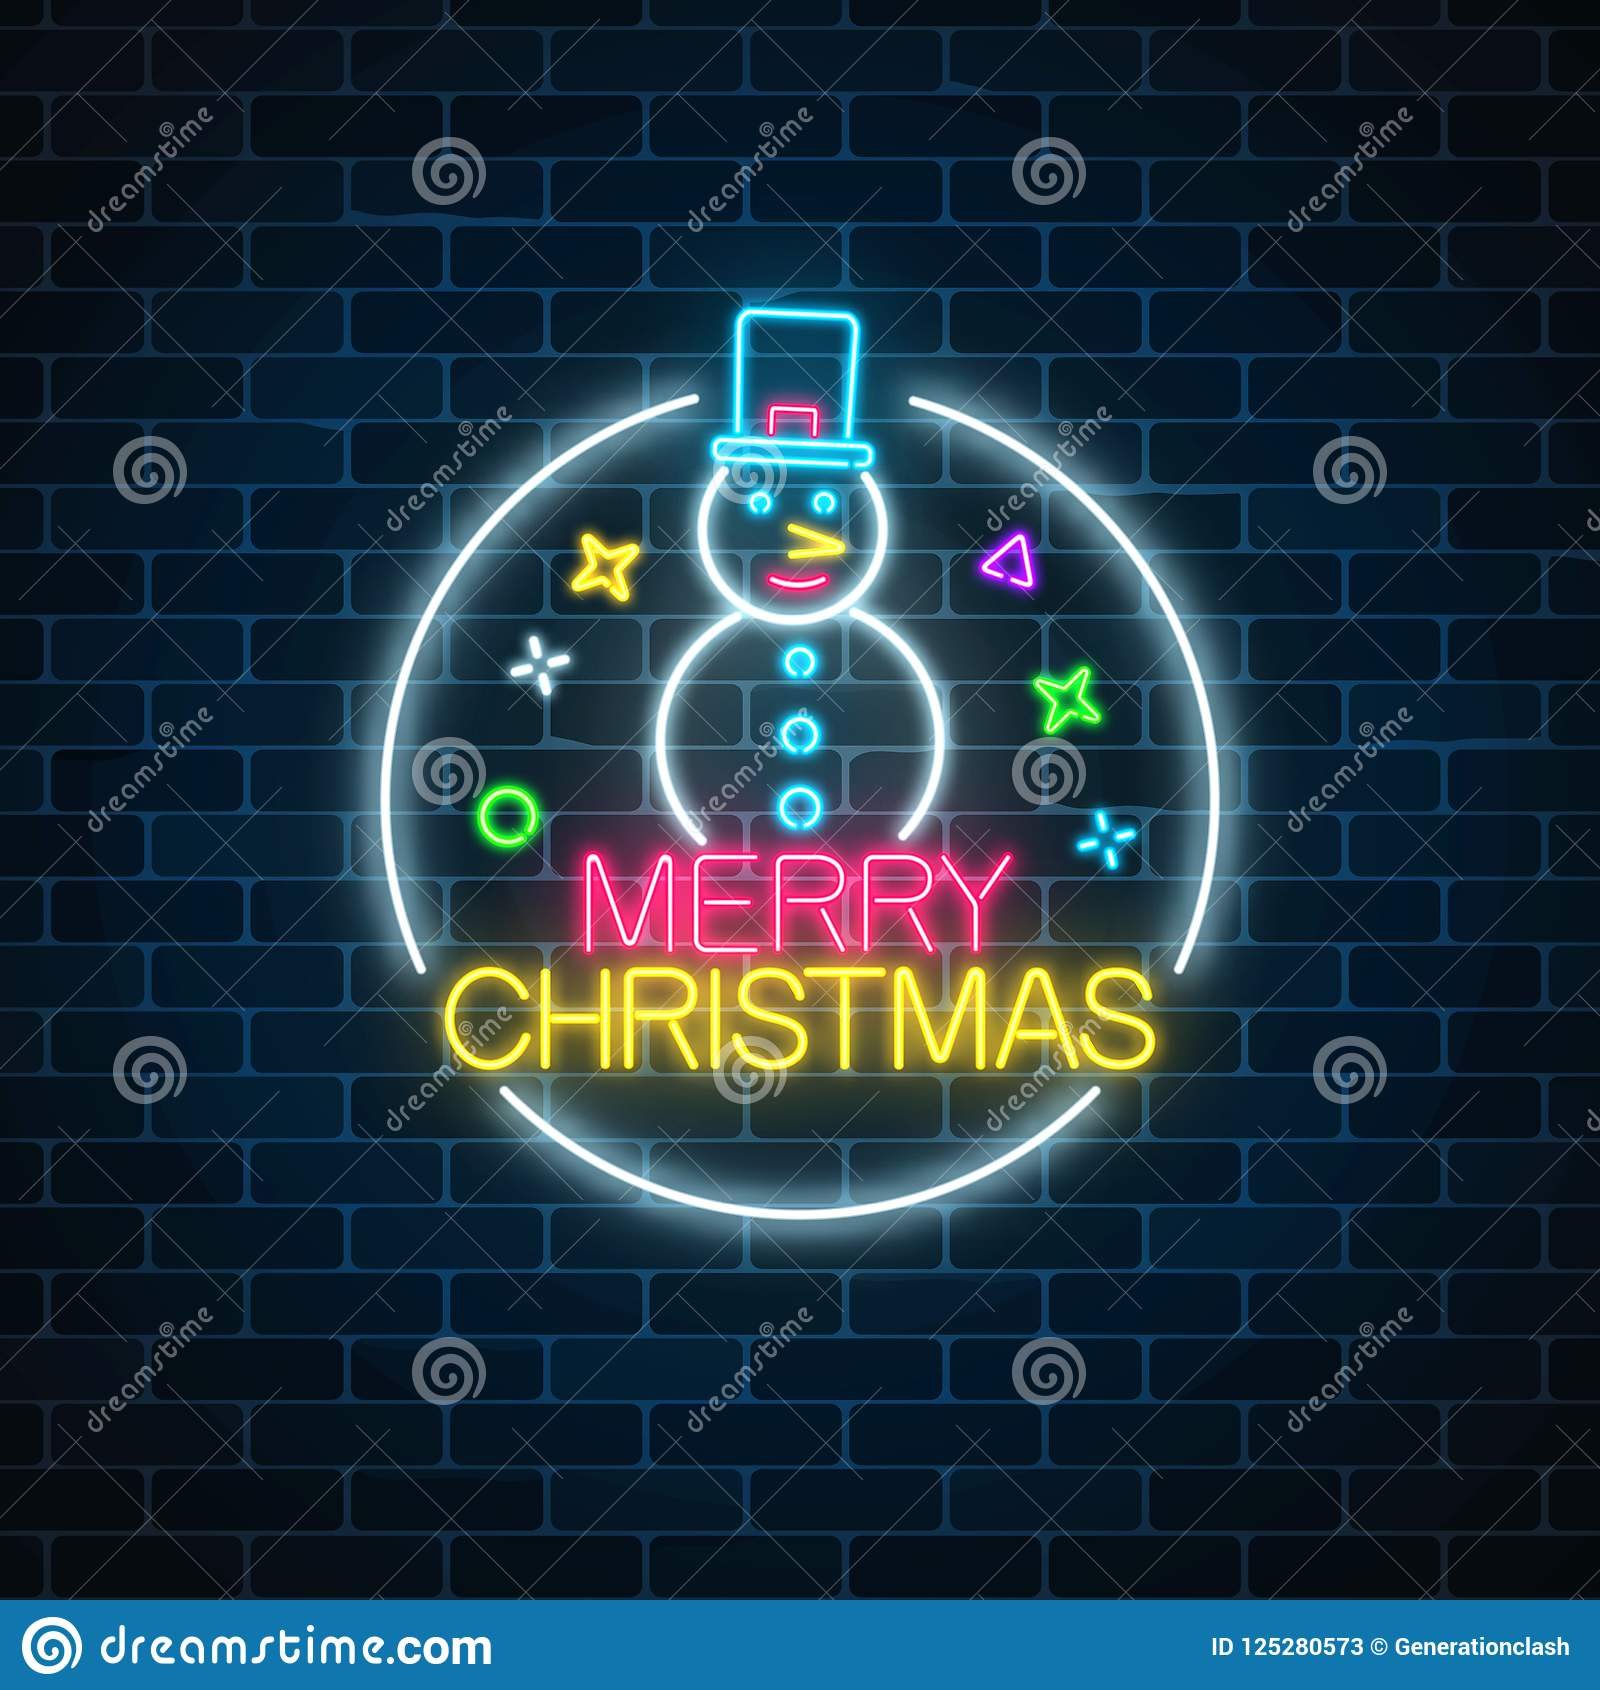 Glowing Neon Christmas Sign With Snowman With Hat In Circle Frame